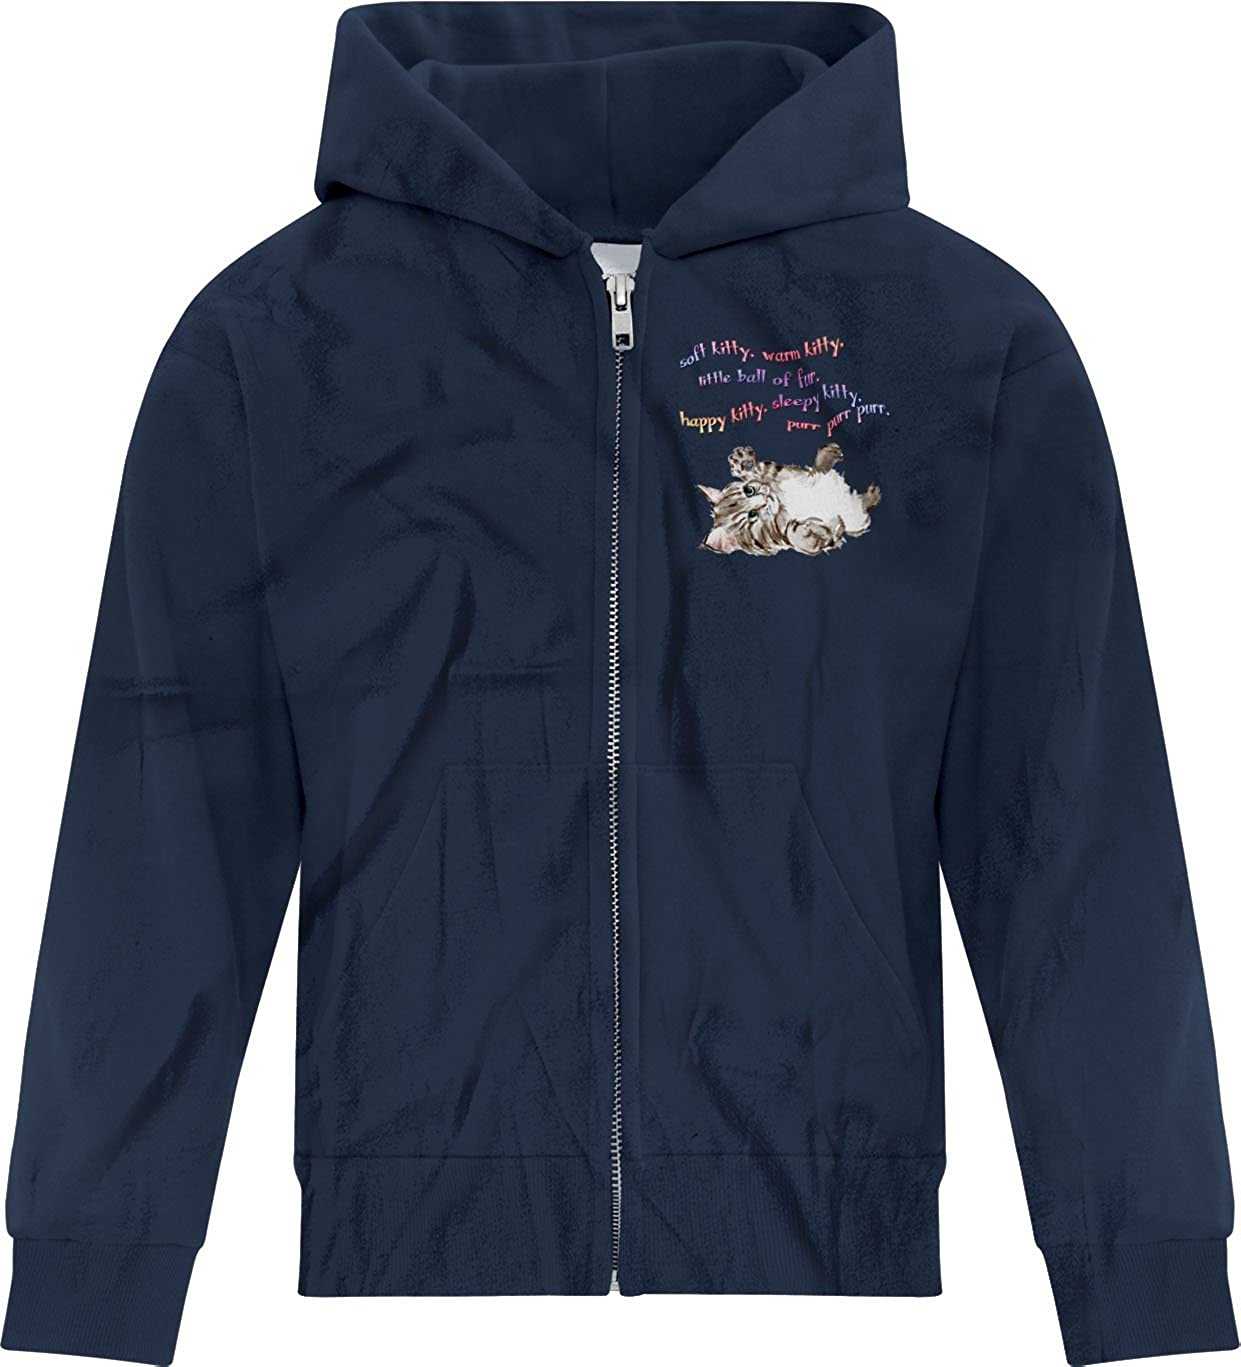 BSW Boys Soft Kitty Sheldon Cooper Big Bang Theory Song Zip Hoodie MED Navy